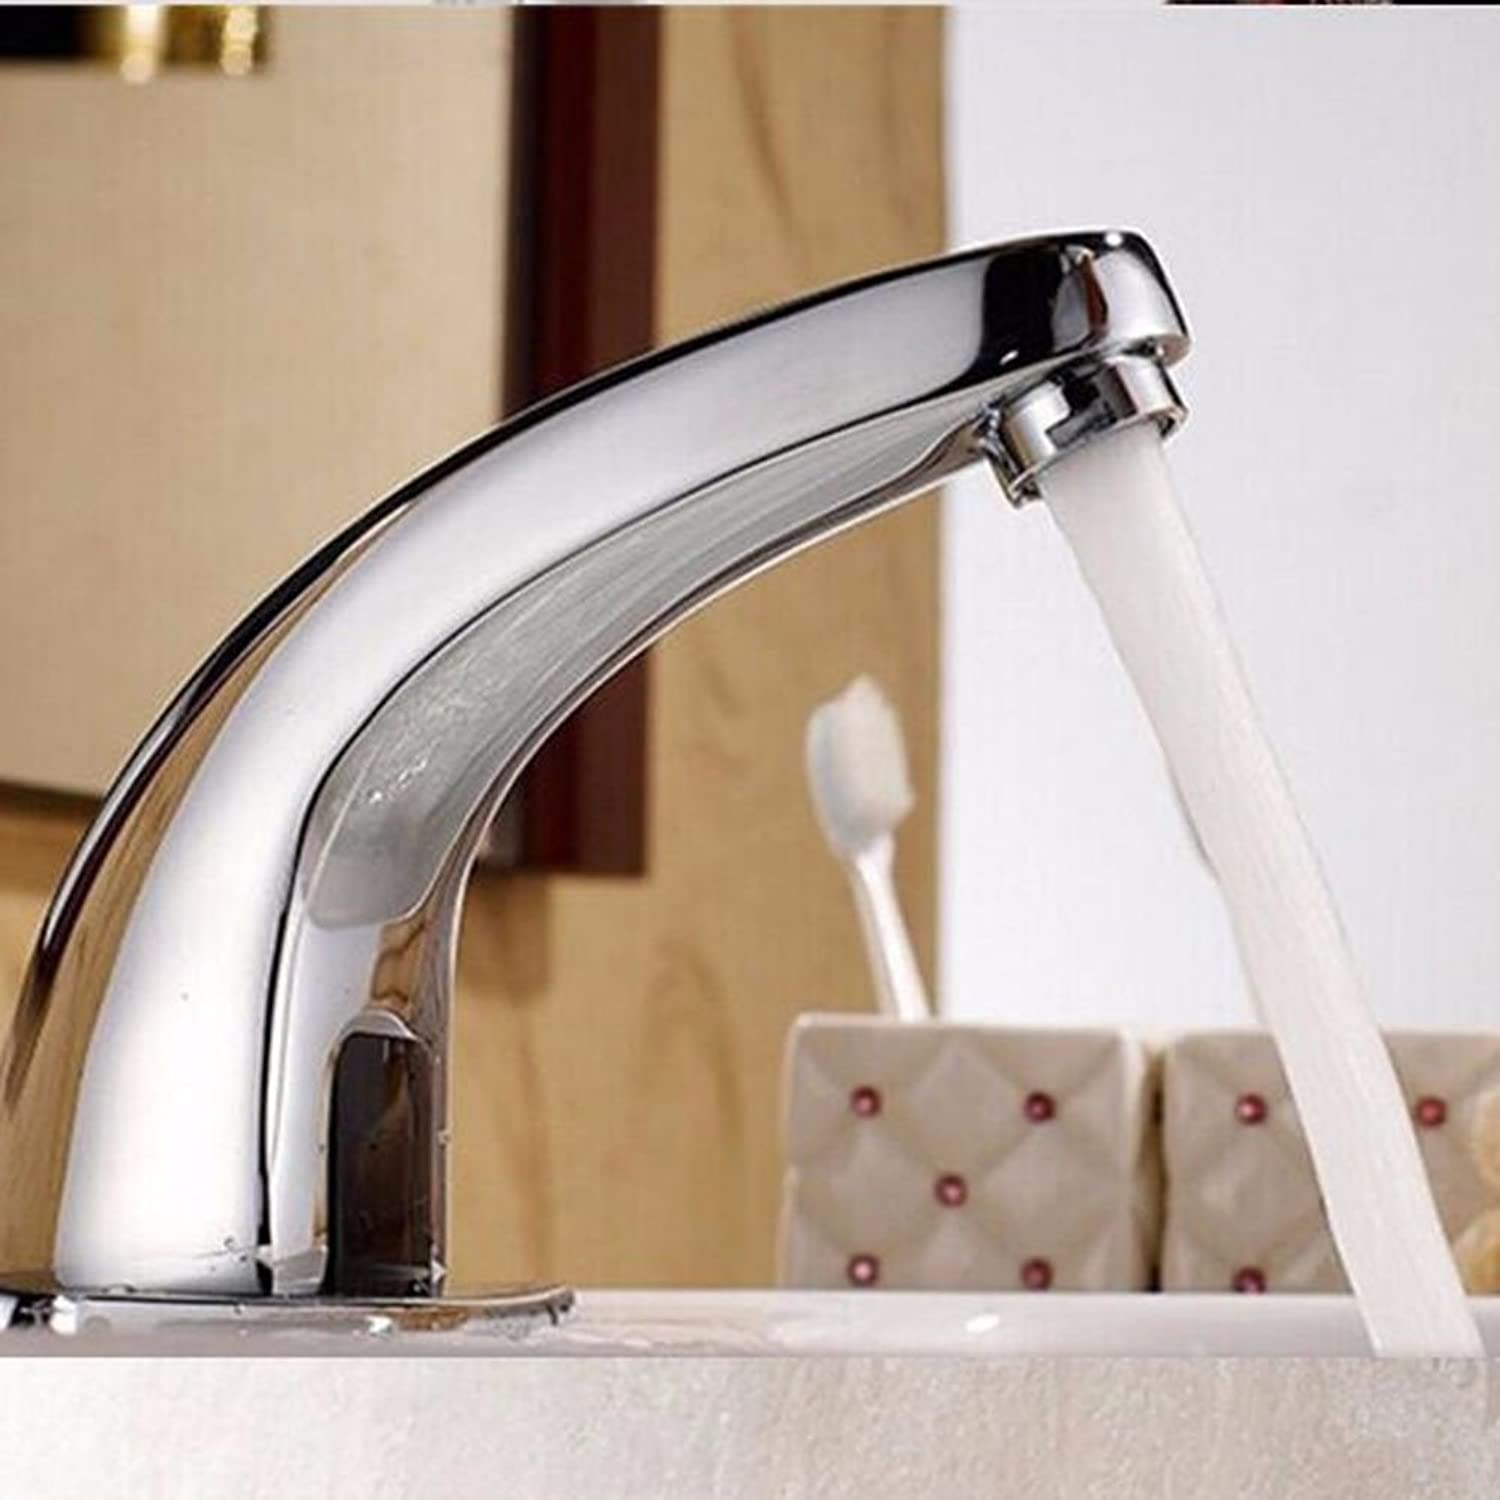 Lalaky Taps Faucet Kitchen Mixer Sink Waterfall Bathroom Mixer Basin Mixer Tap for Kitchen Bathroom and Washroom All Copper Induction Single Cold